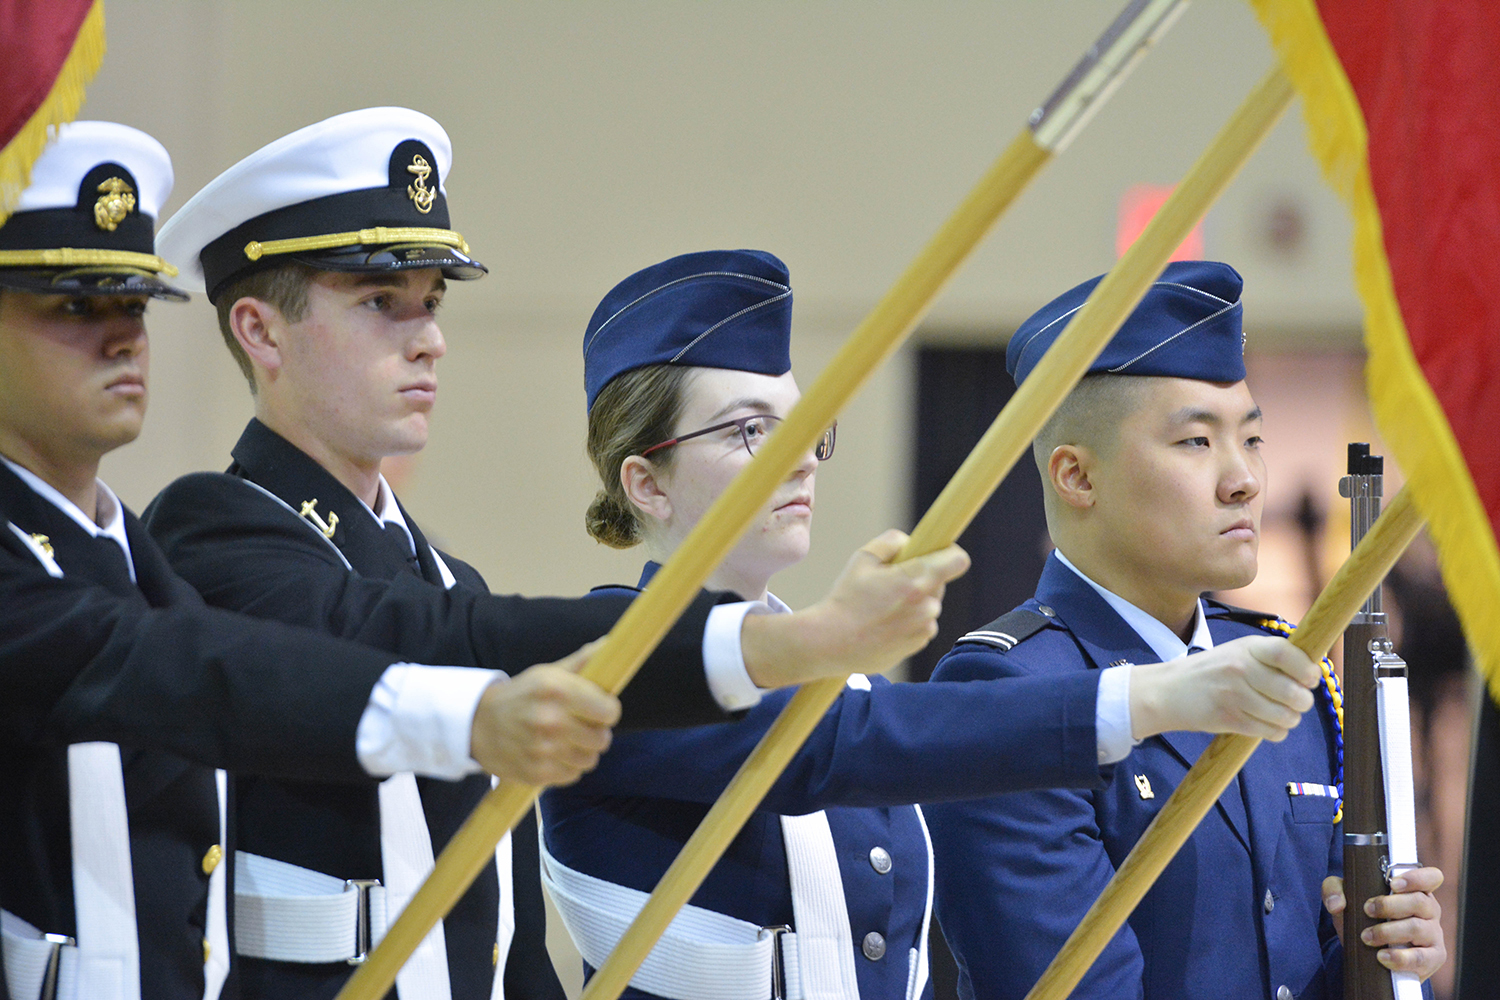 ROTC students hold flags and a firearm